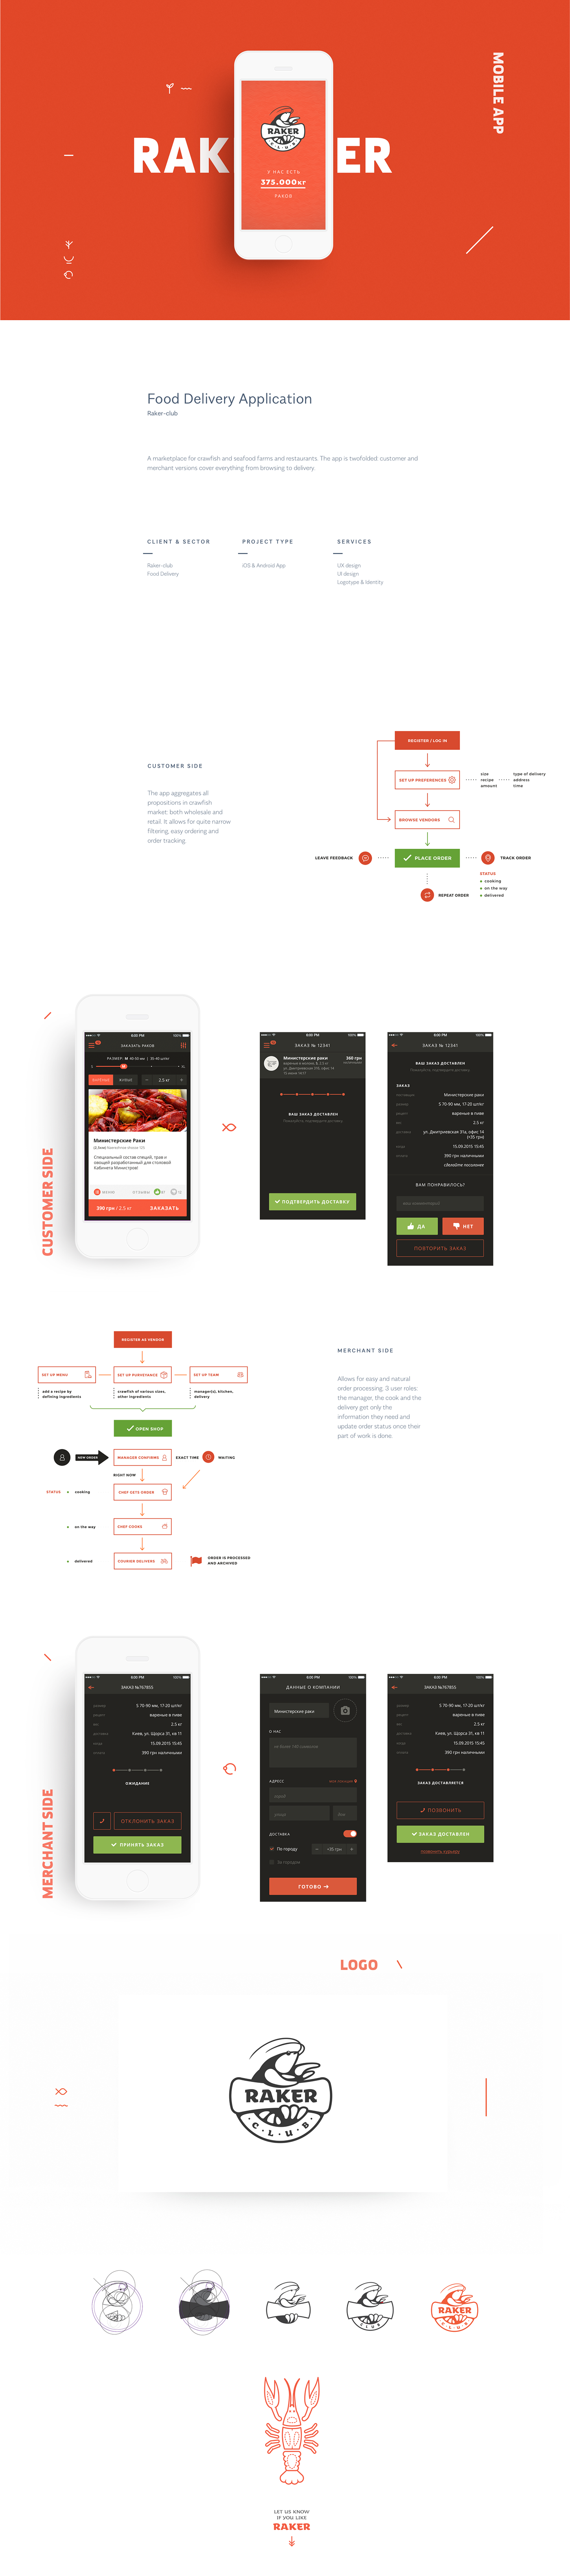 Crawfish Ecommerce app merchant trade Marketplace sell buy Order shop catering Food  delivery processing management